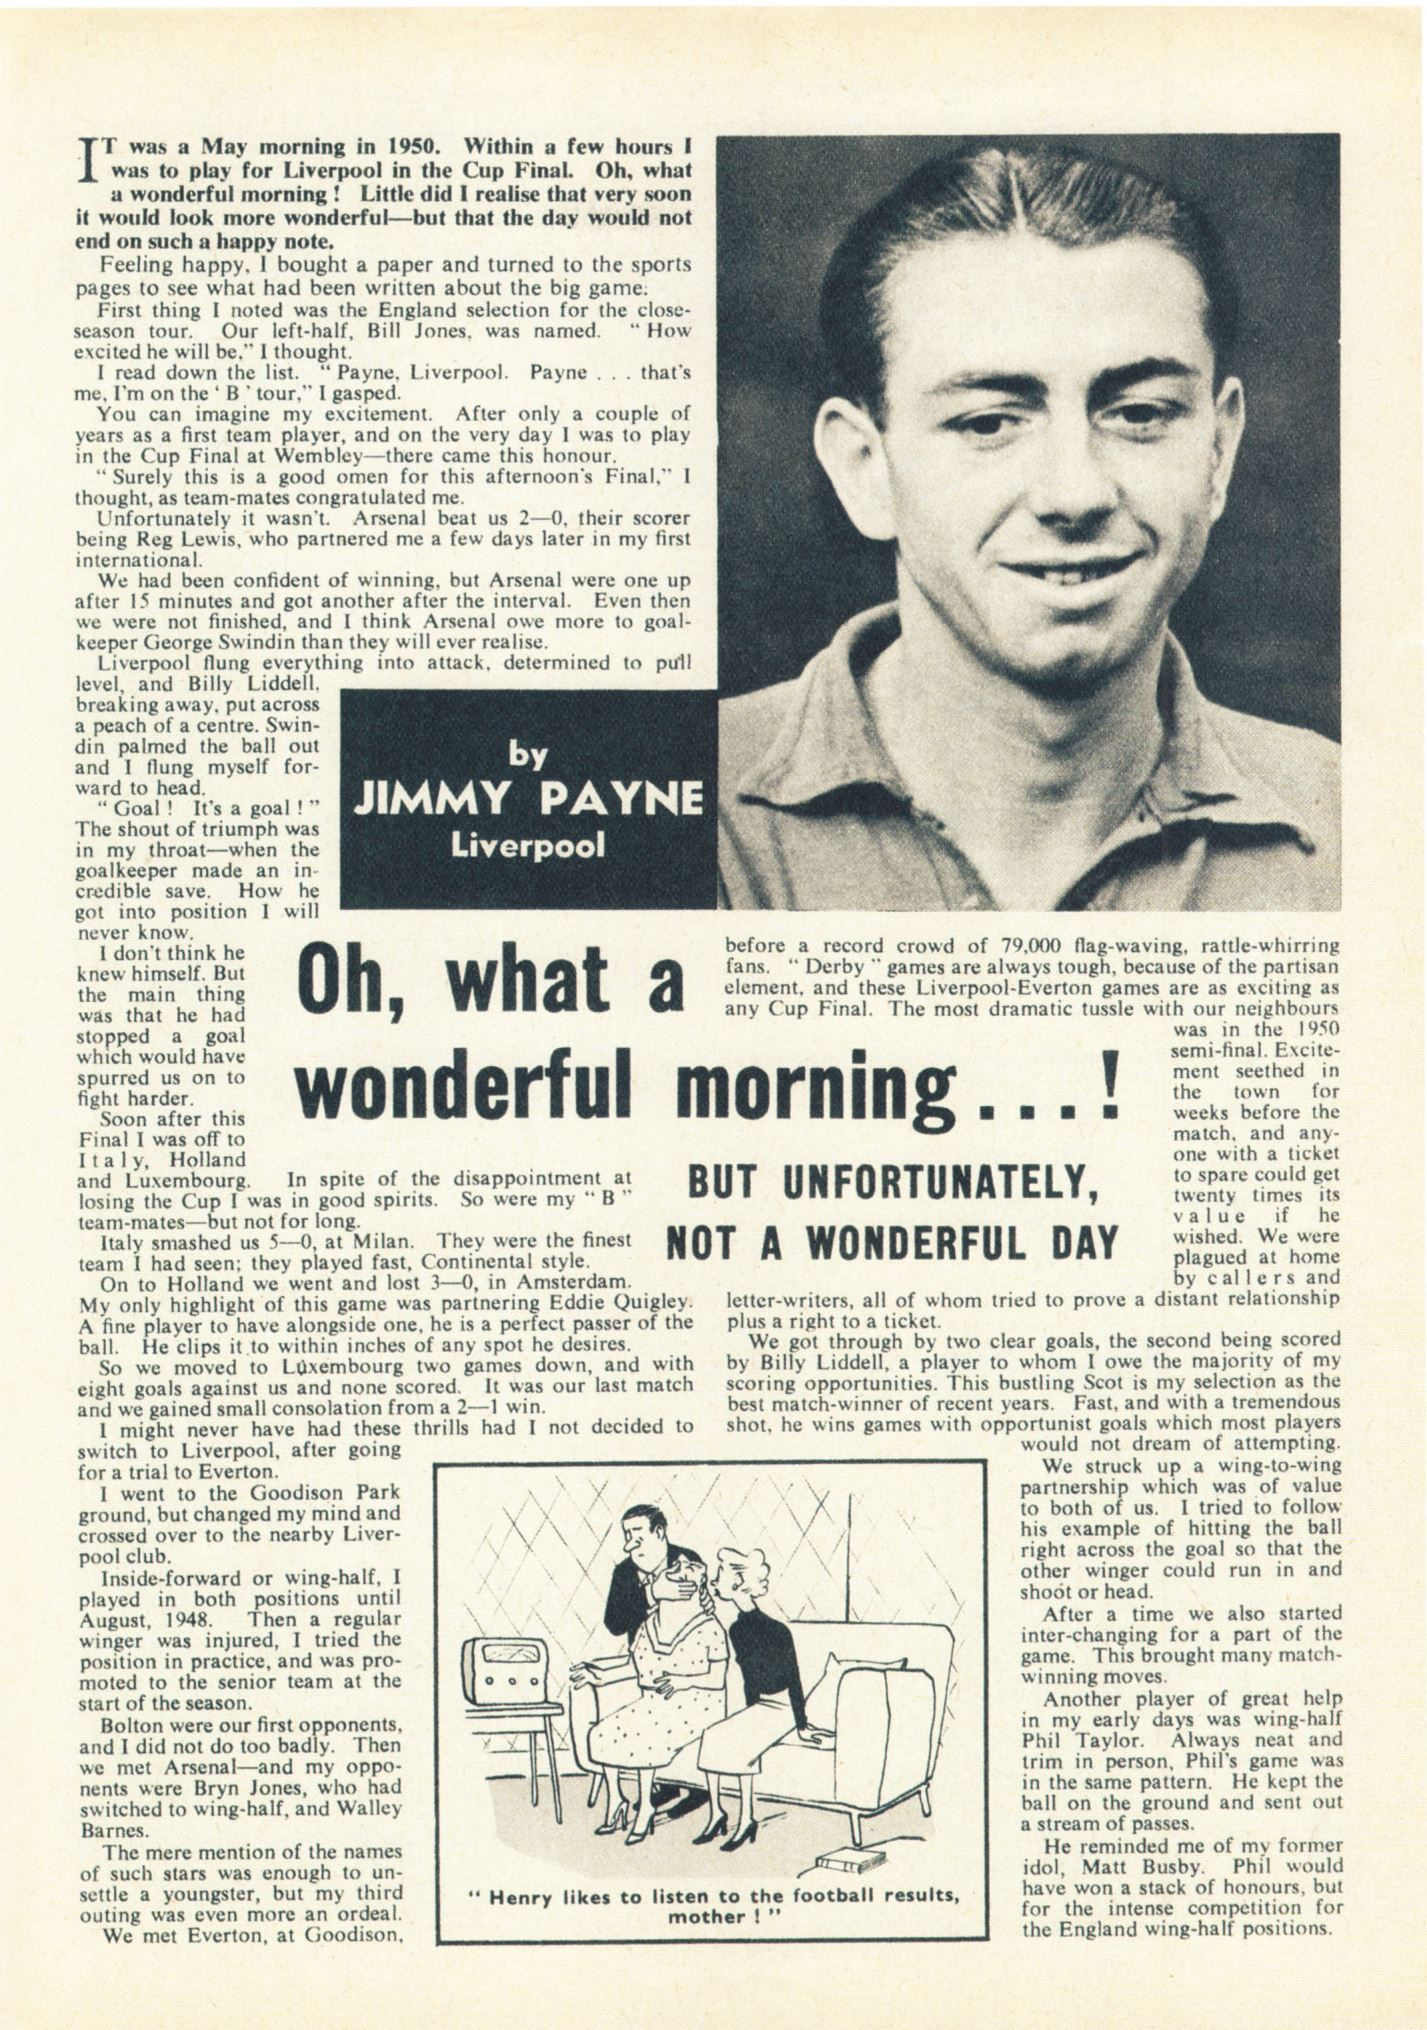 A wonderful morning, but not a wonderful day - Football Monthly December 1955